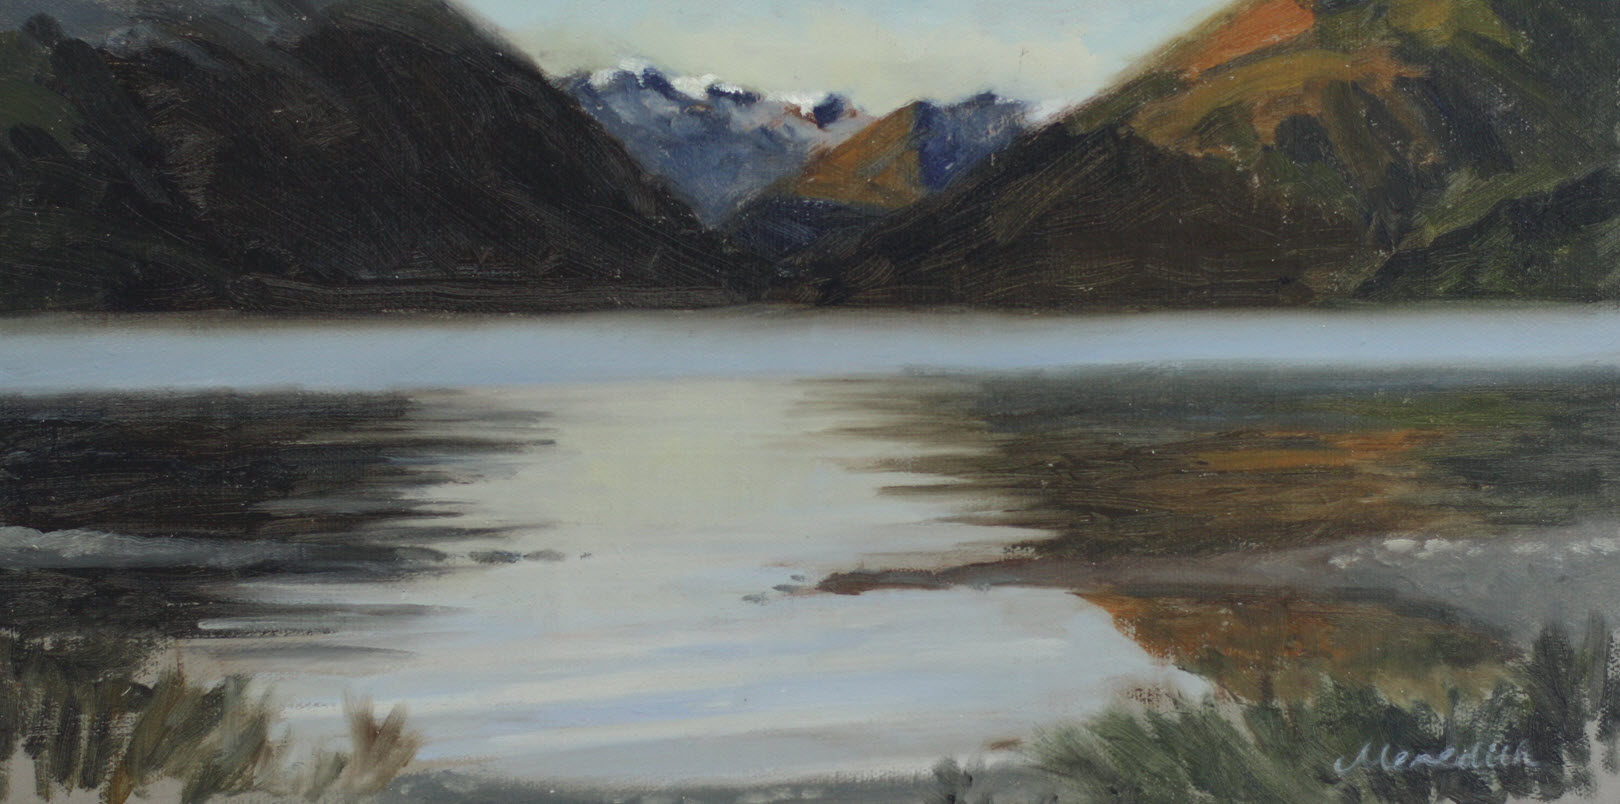 Lake Rotoiti Early Morning Mist  (2018). 290 mm x 410 mm. Oil on Canvas.